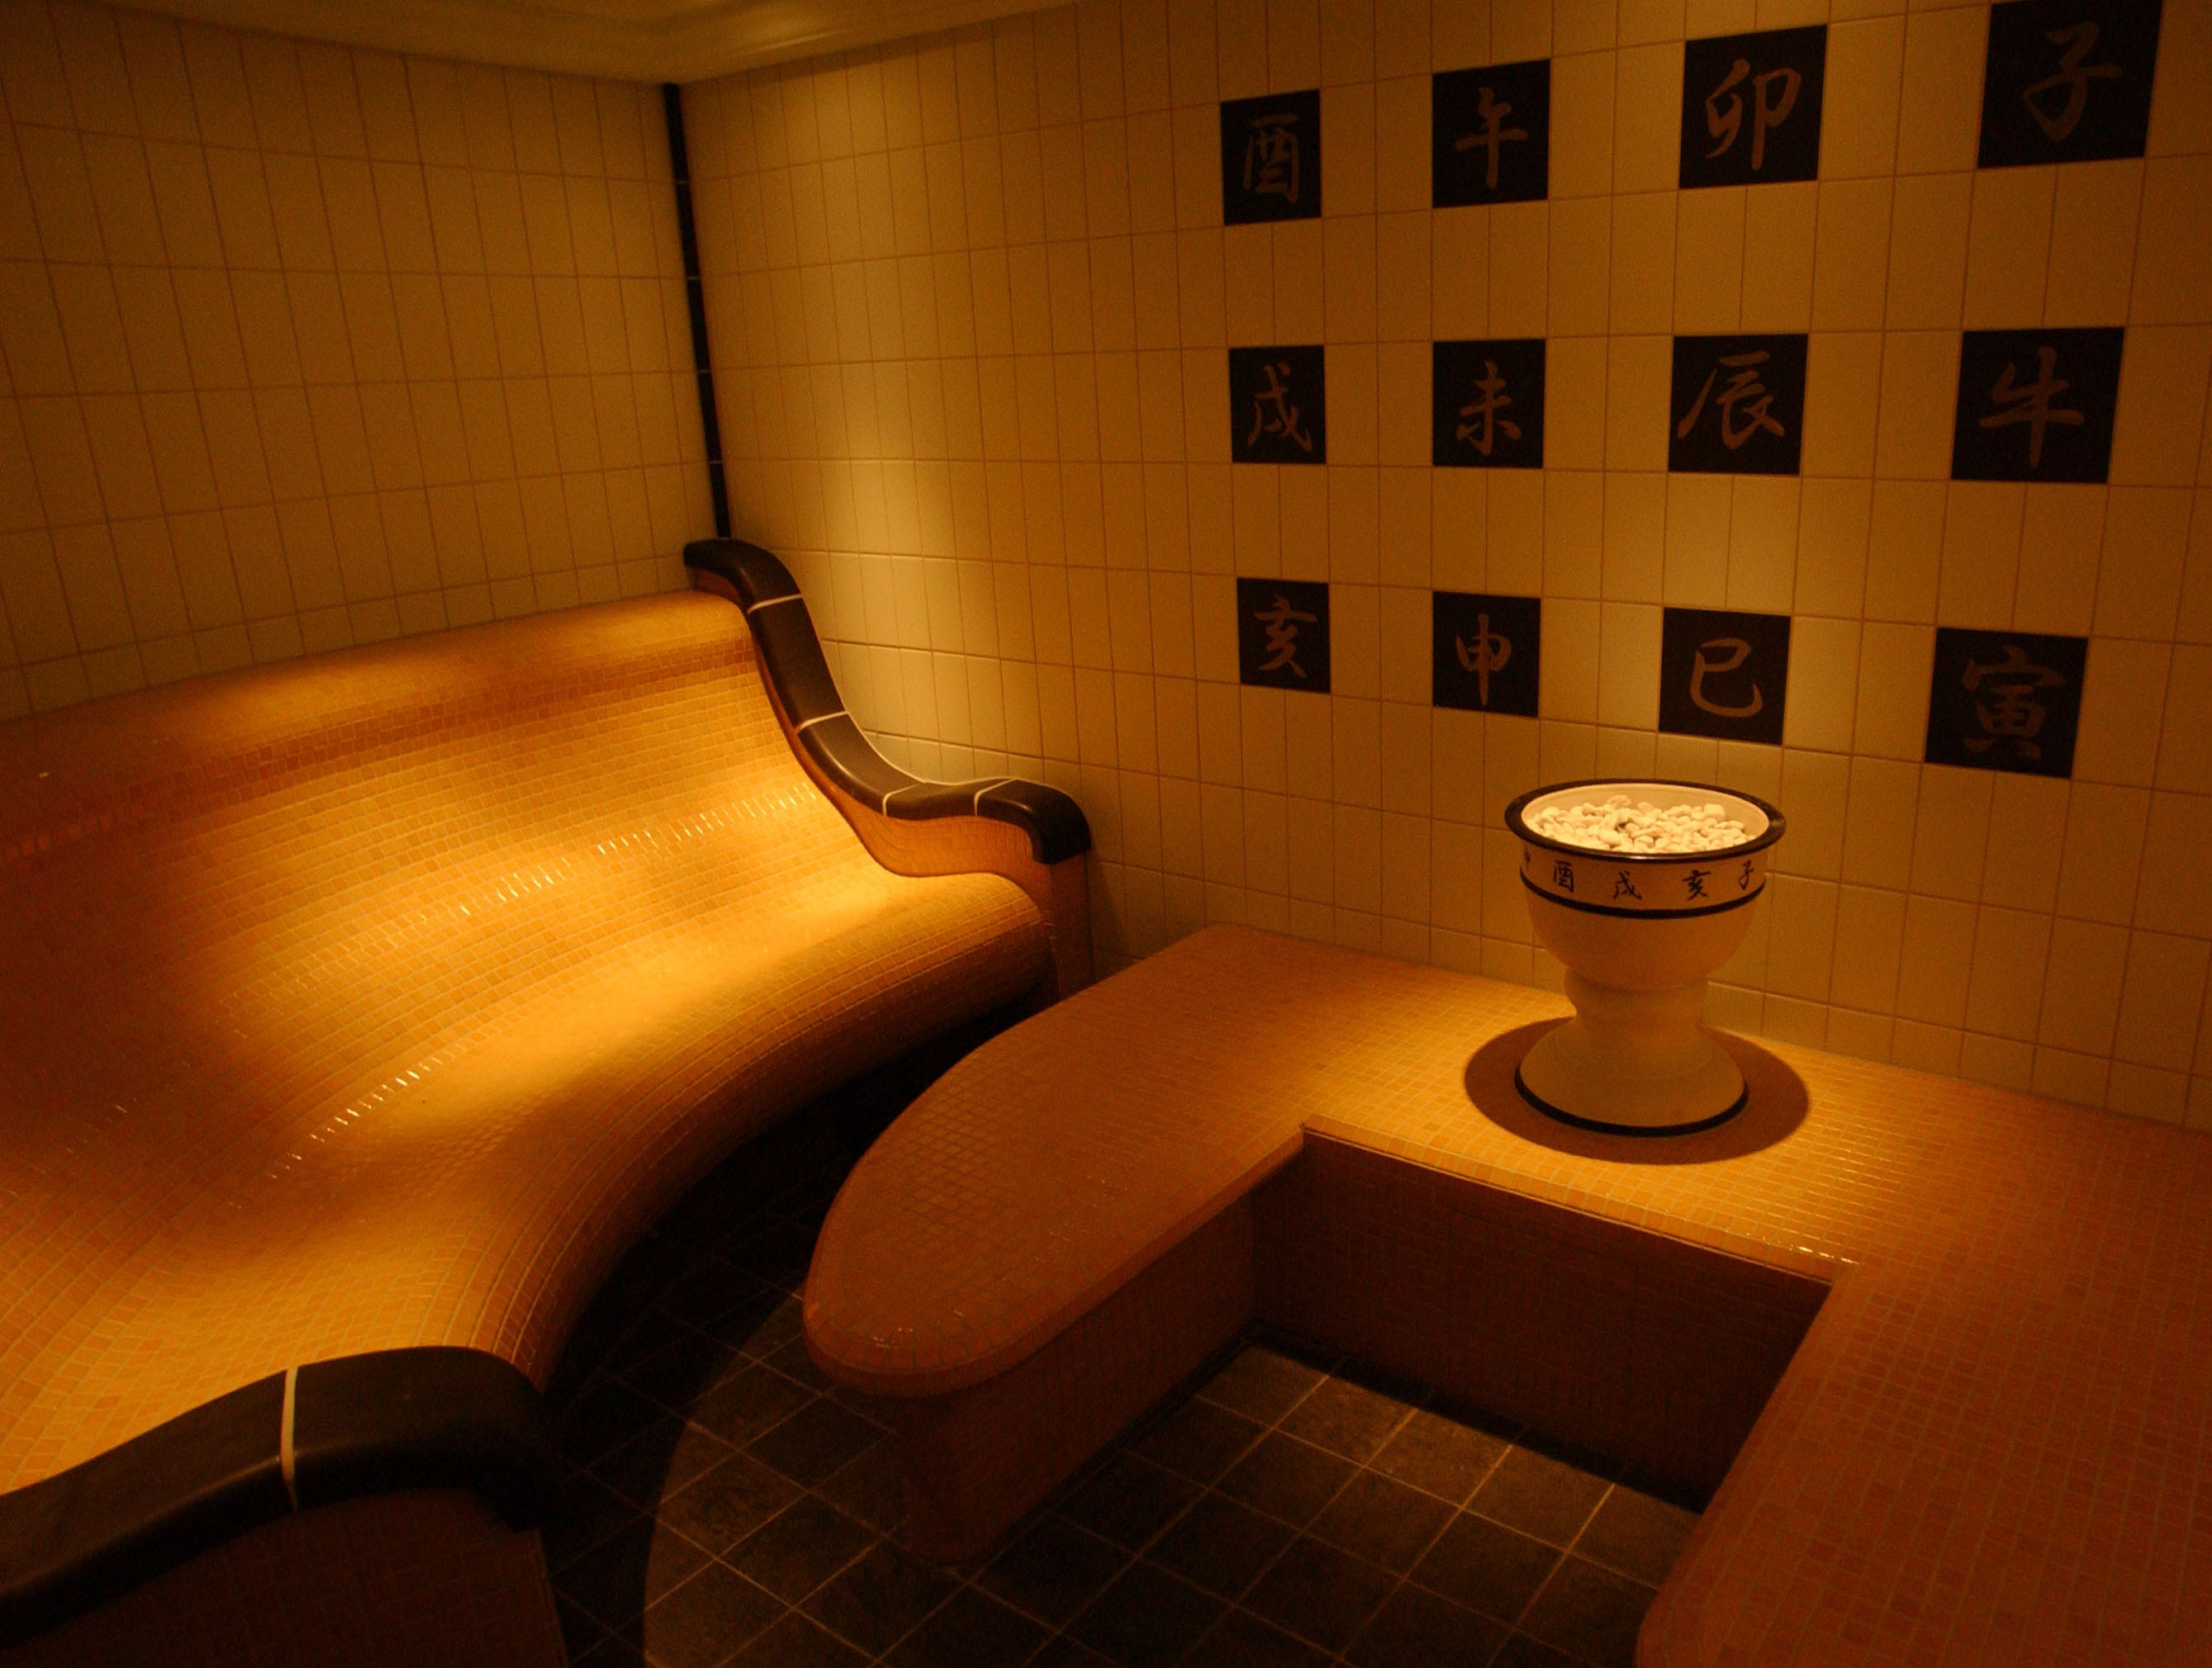 The Caribbean Princess' Lotus Spa includes an intimate sauna onboard.